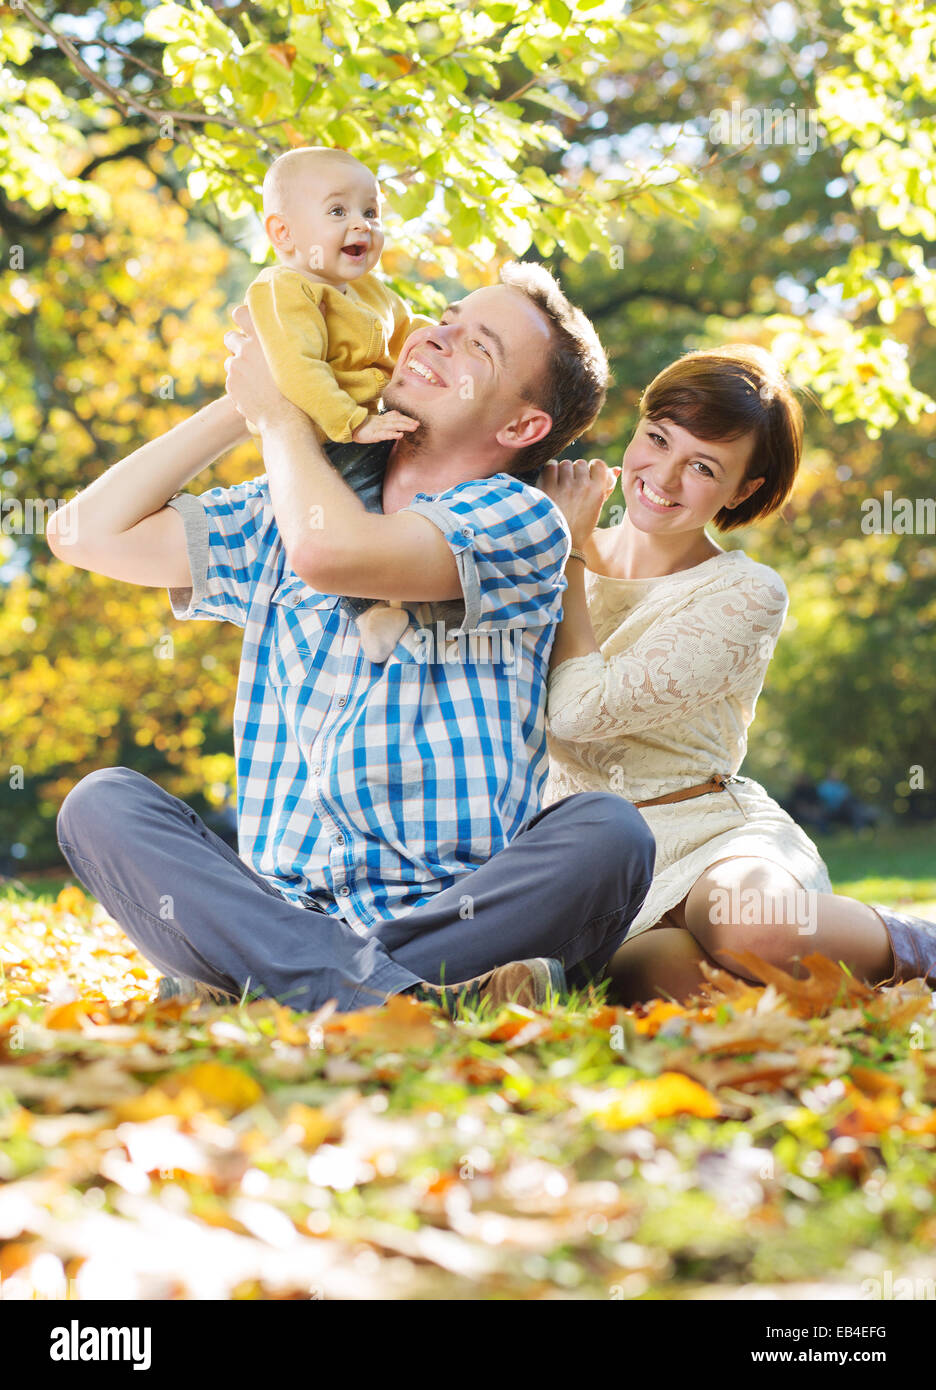 Young parents enjoying spare time with child - Stock Image